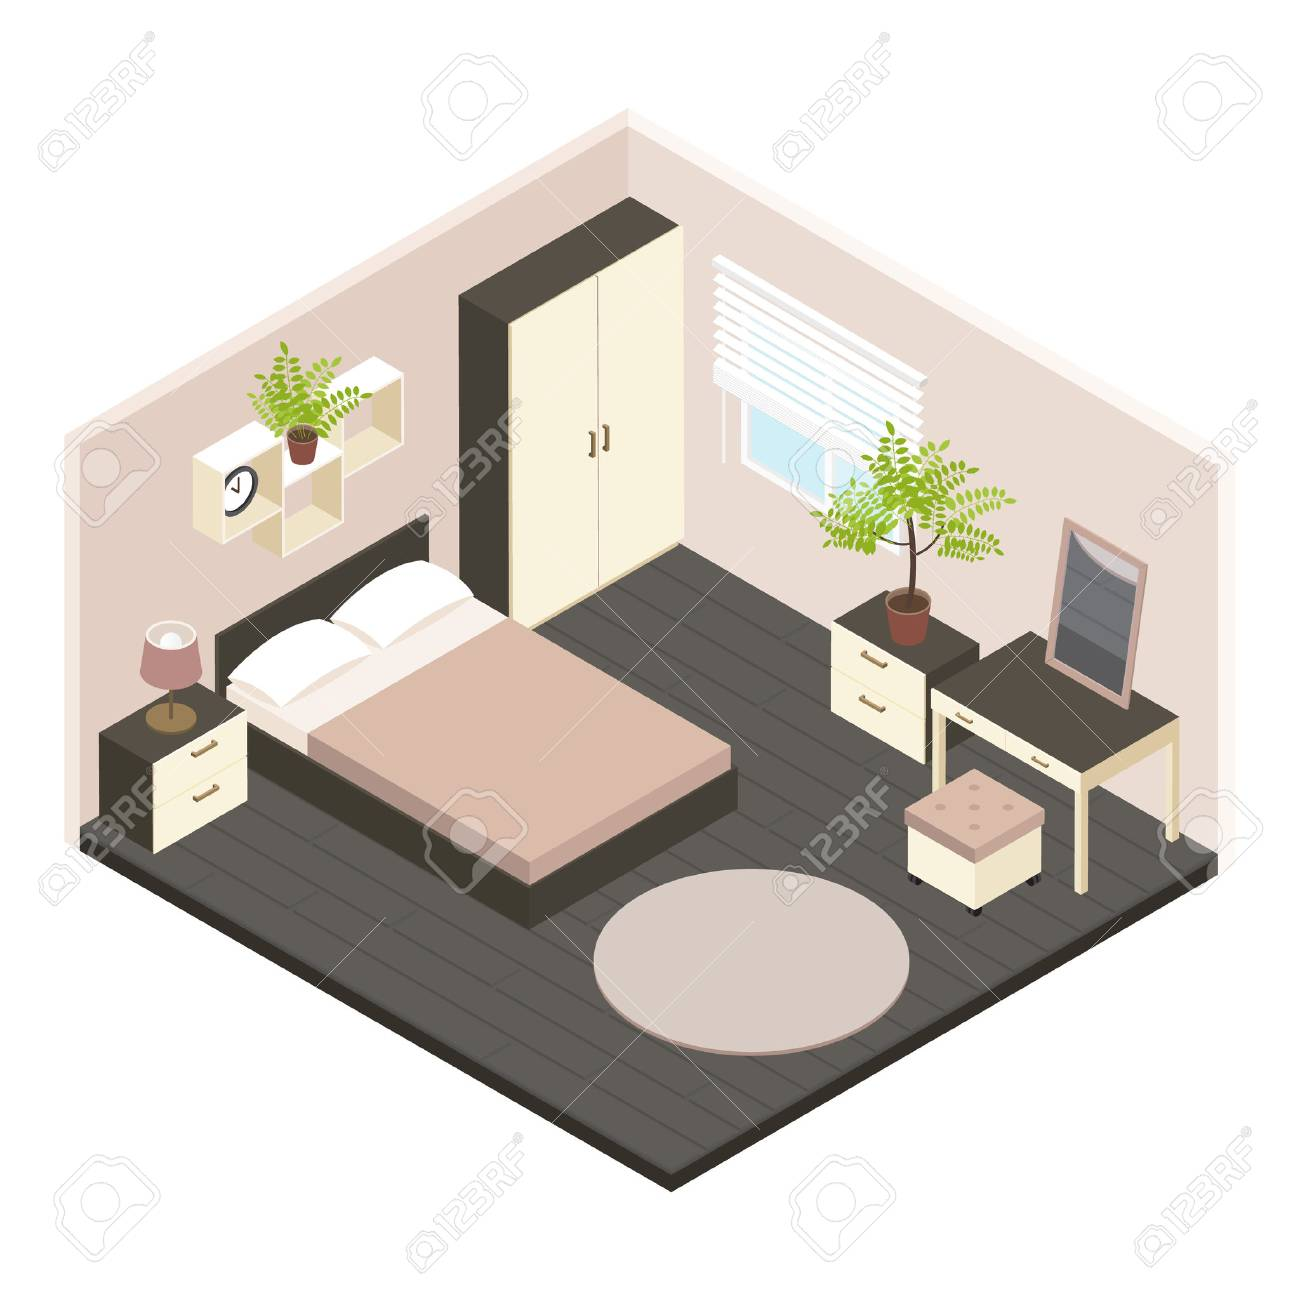 3d Isometric Bedroom Interior With Newly Renovated In Volumetric Style And  Minimalist Style Illustration Stock Vector